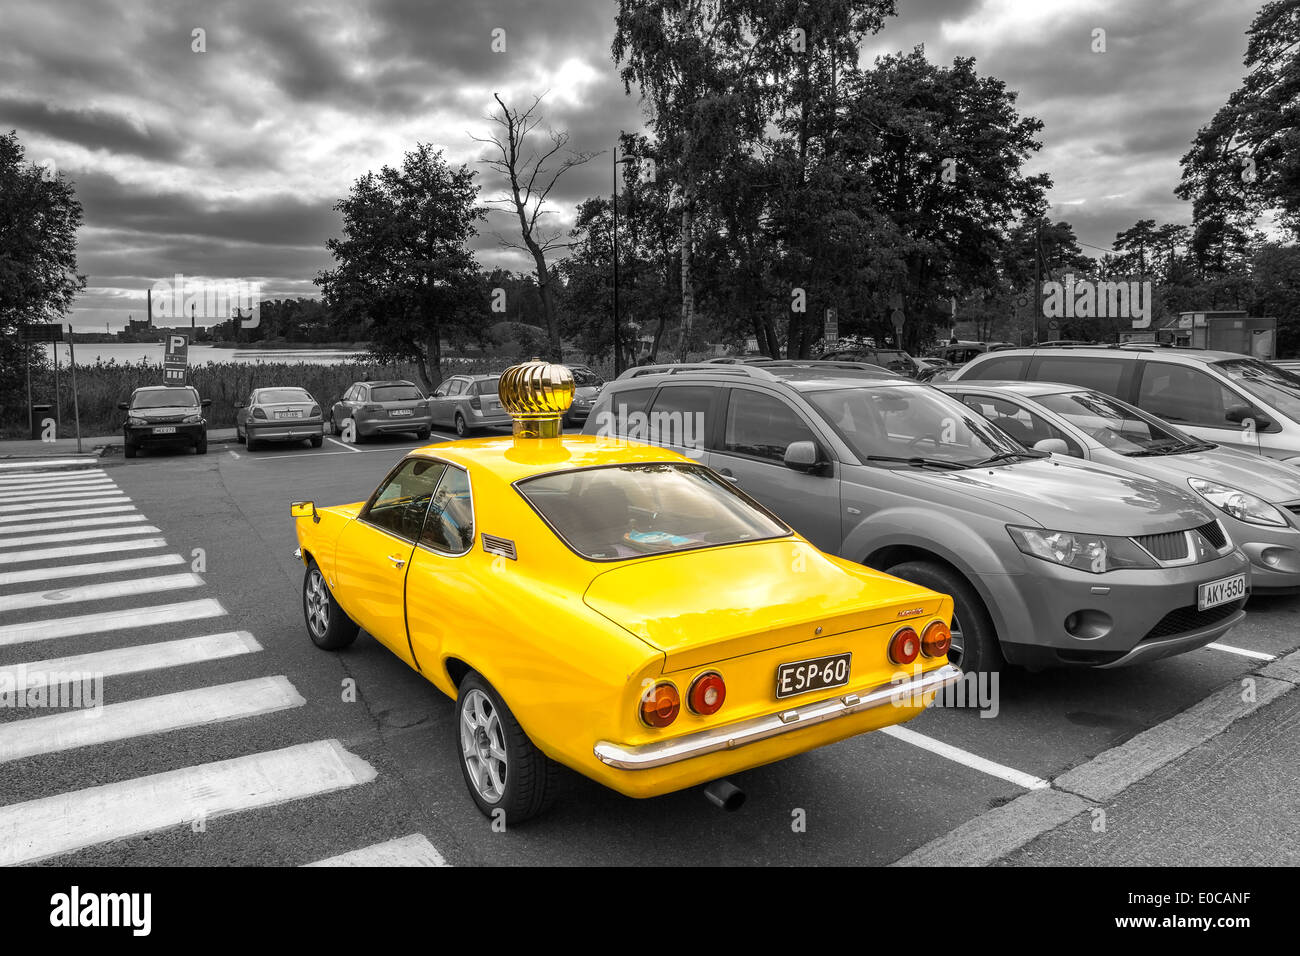 Opel Manta Car High Resolution Stock Photography And Images Alamy